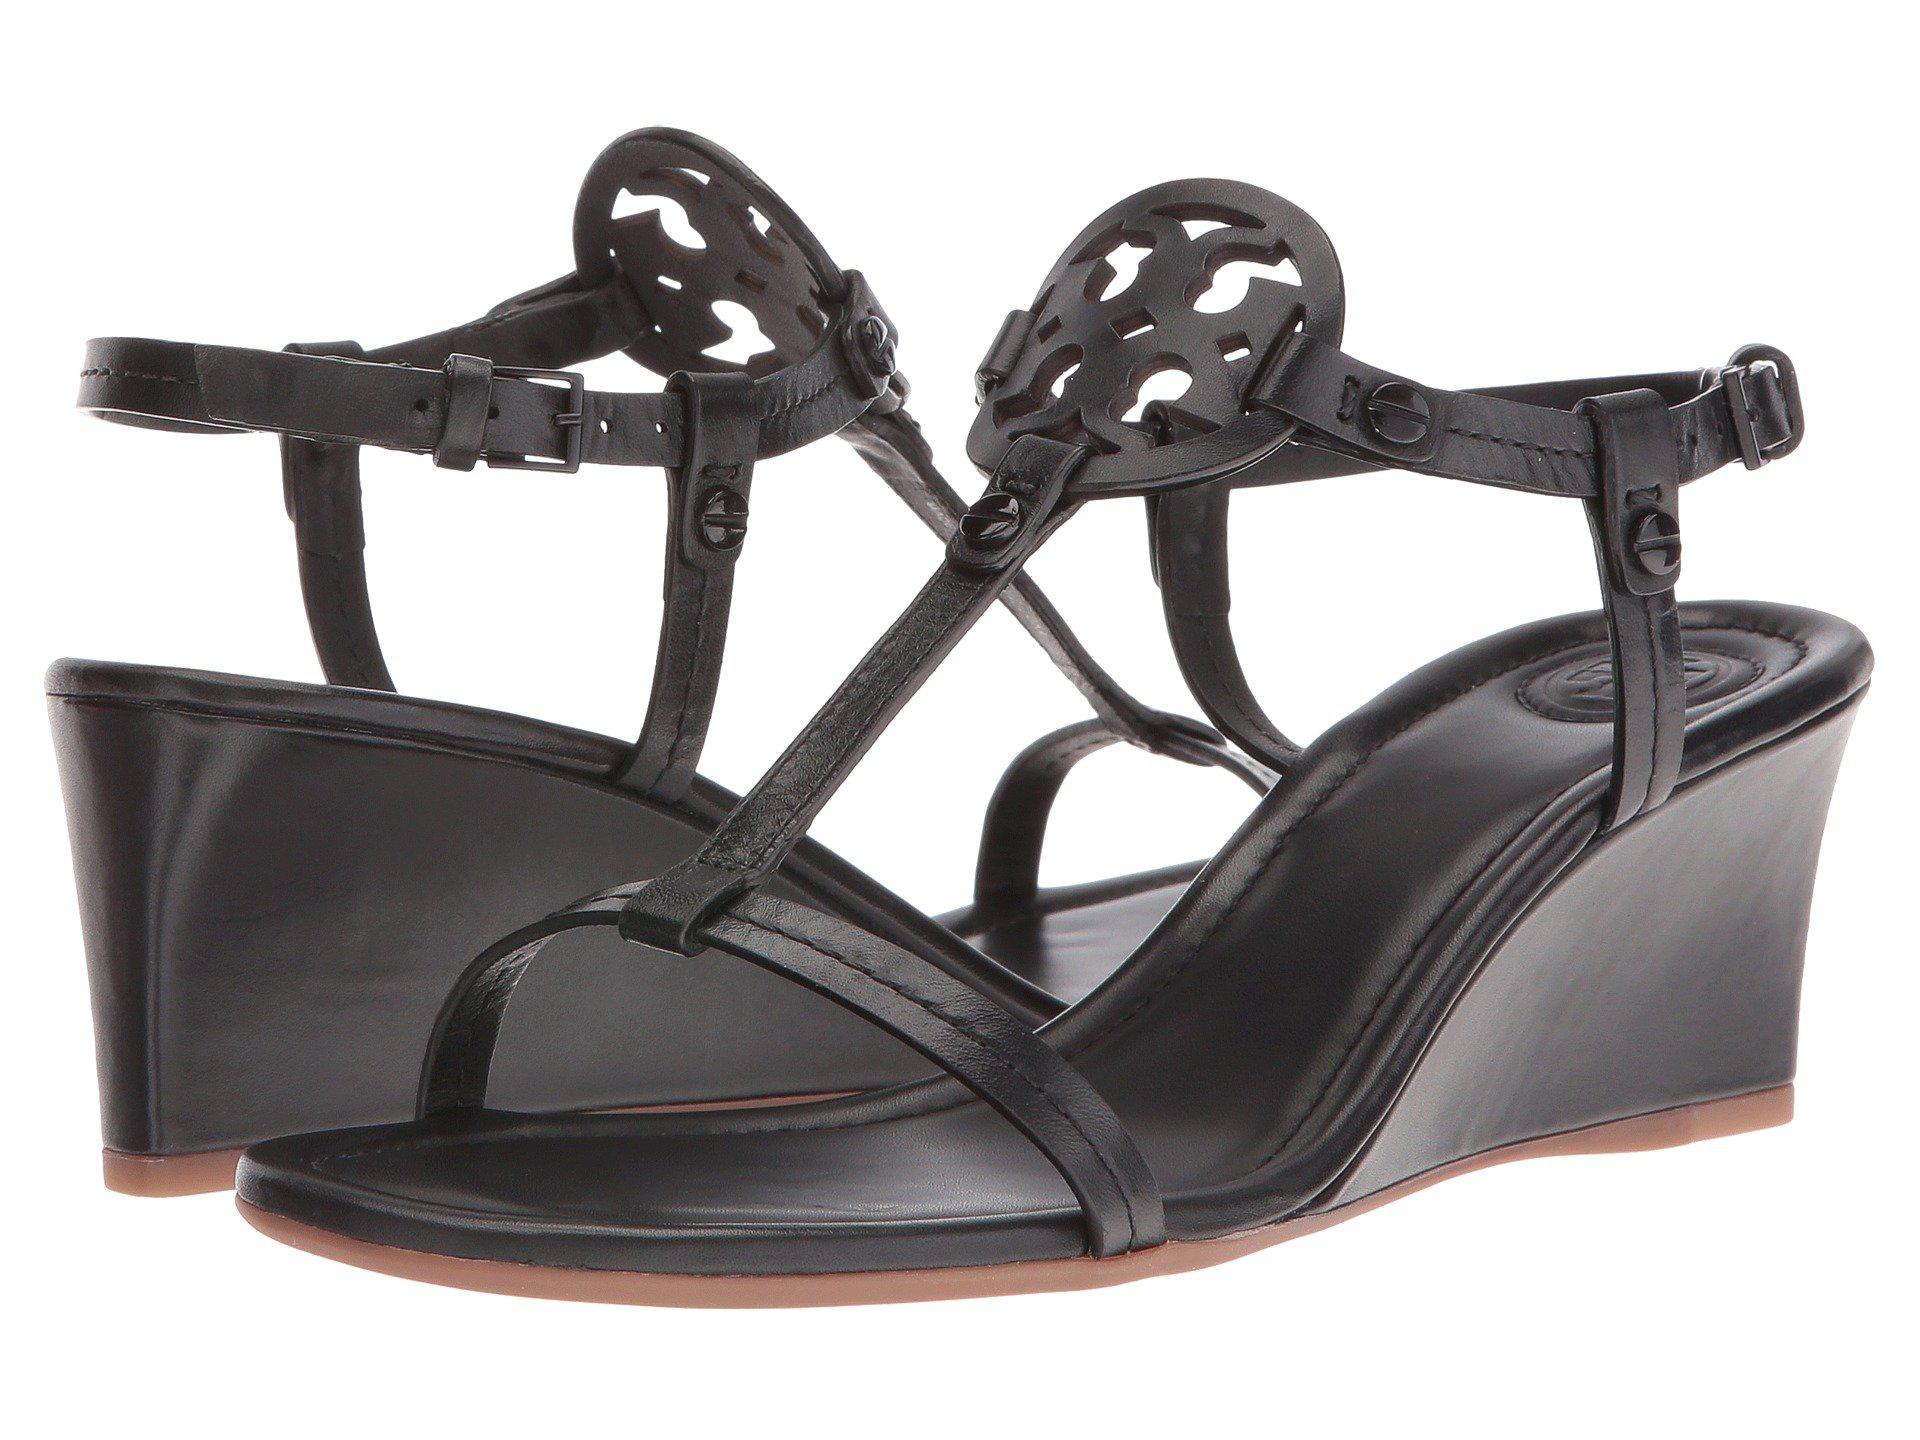 Lyst Tory Burch Miller Medallion Wedge Sandals In Black